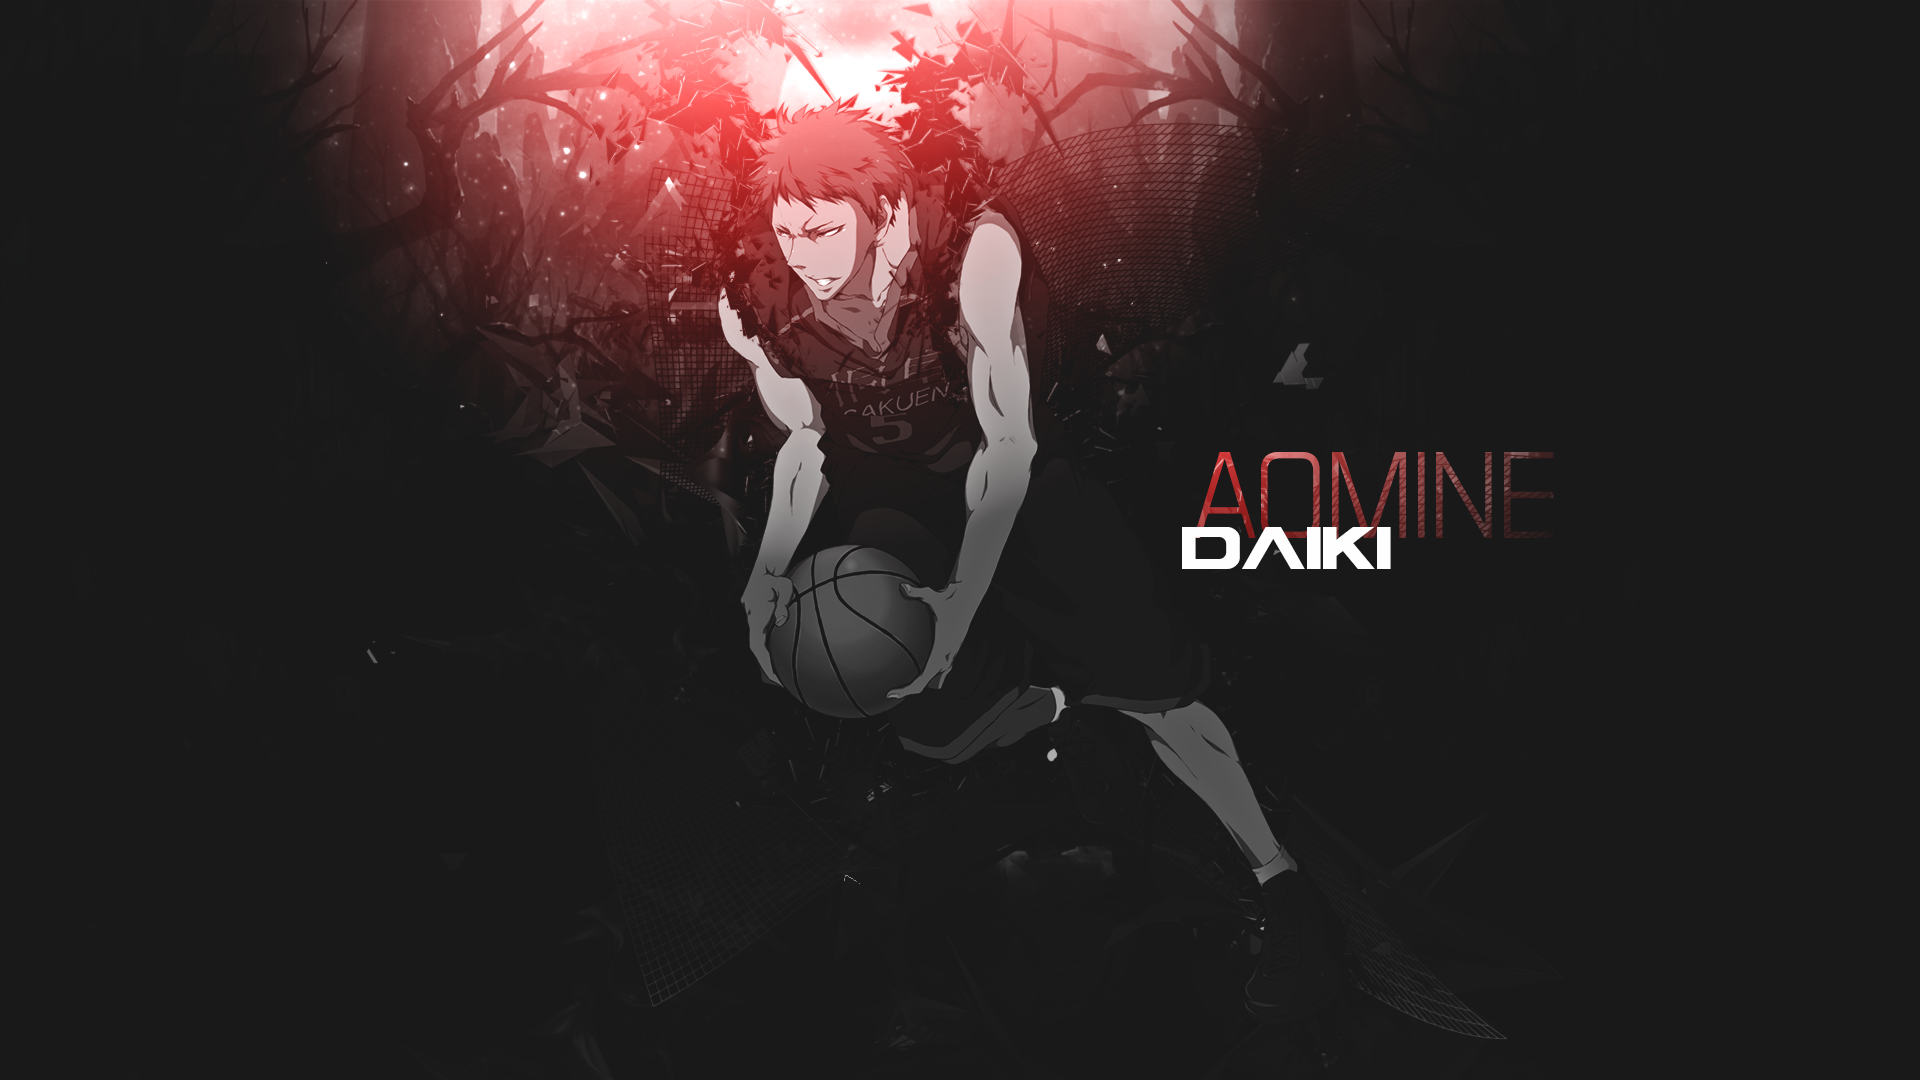 Daiki Aomine Wallpaper - Kuroko no basket by dani17k on DeviantArt